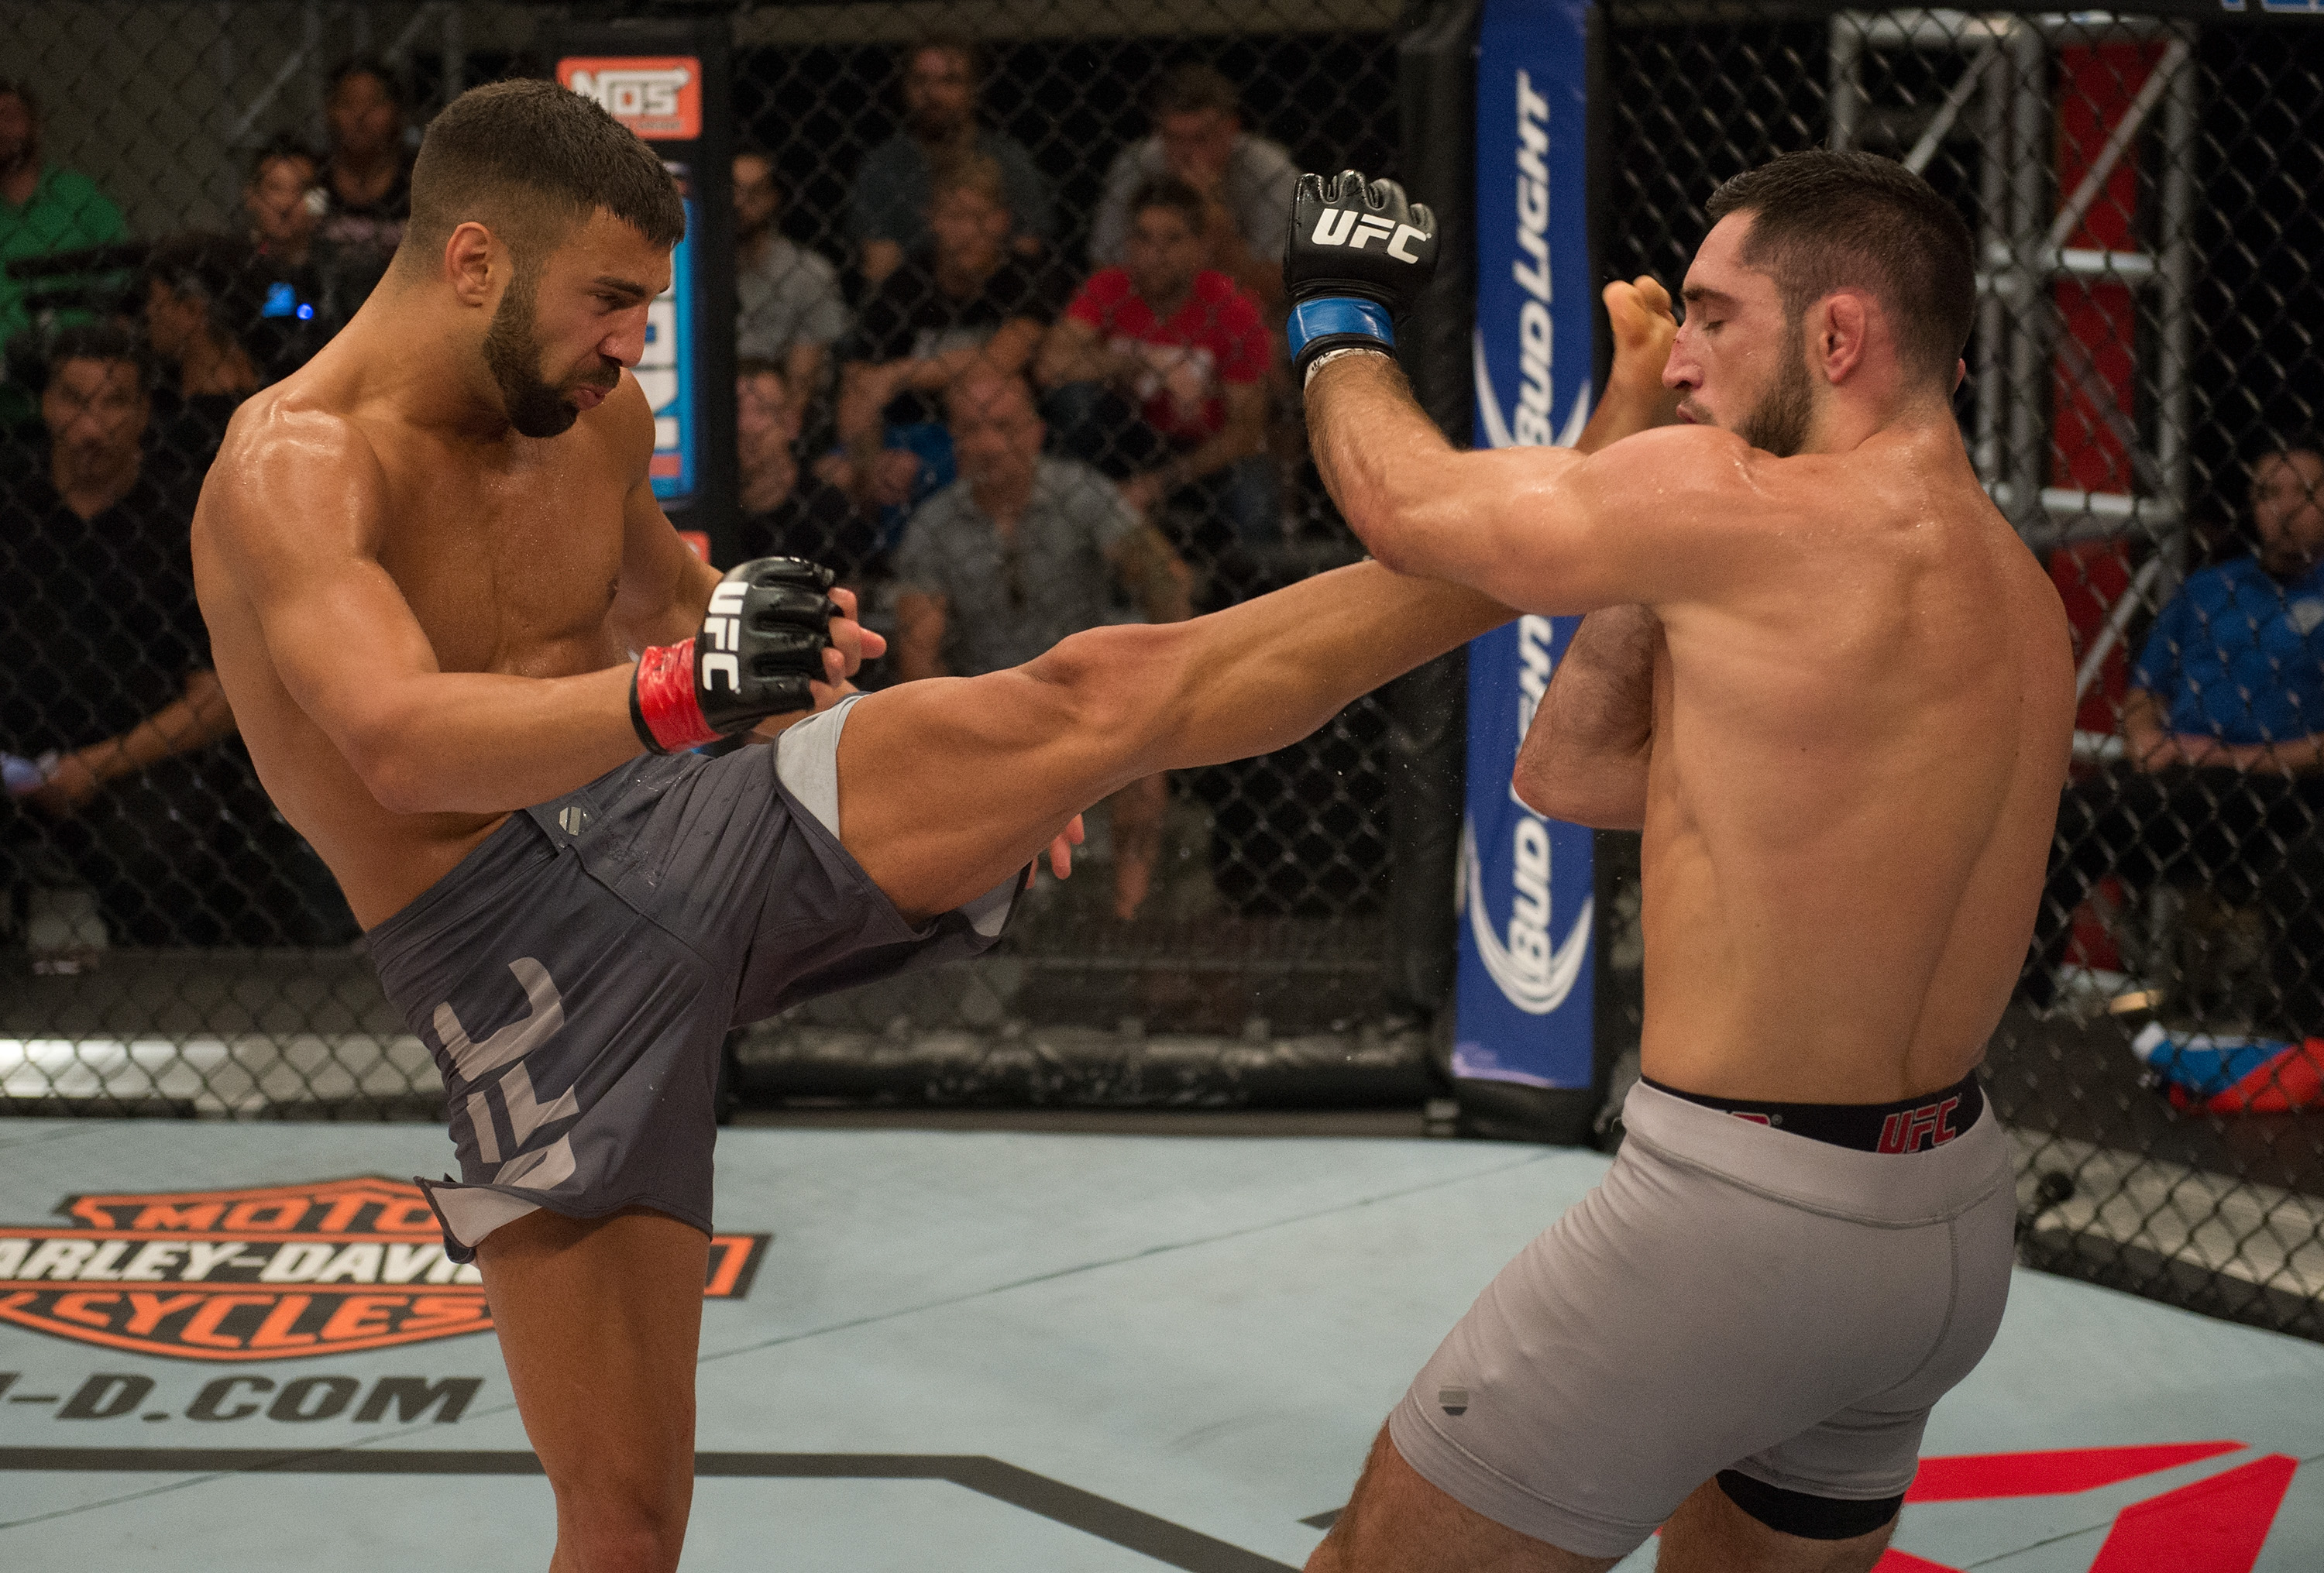 (L-R) David Teymur kicks Thibault Gouti during the elimination fights at the UFC TUF Gym on July 17, 2015 in Las Vegas, Nevada. (Photo by Brandon Magnus/Zuffa LLC)